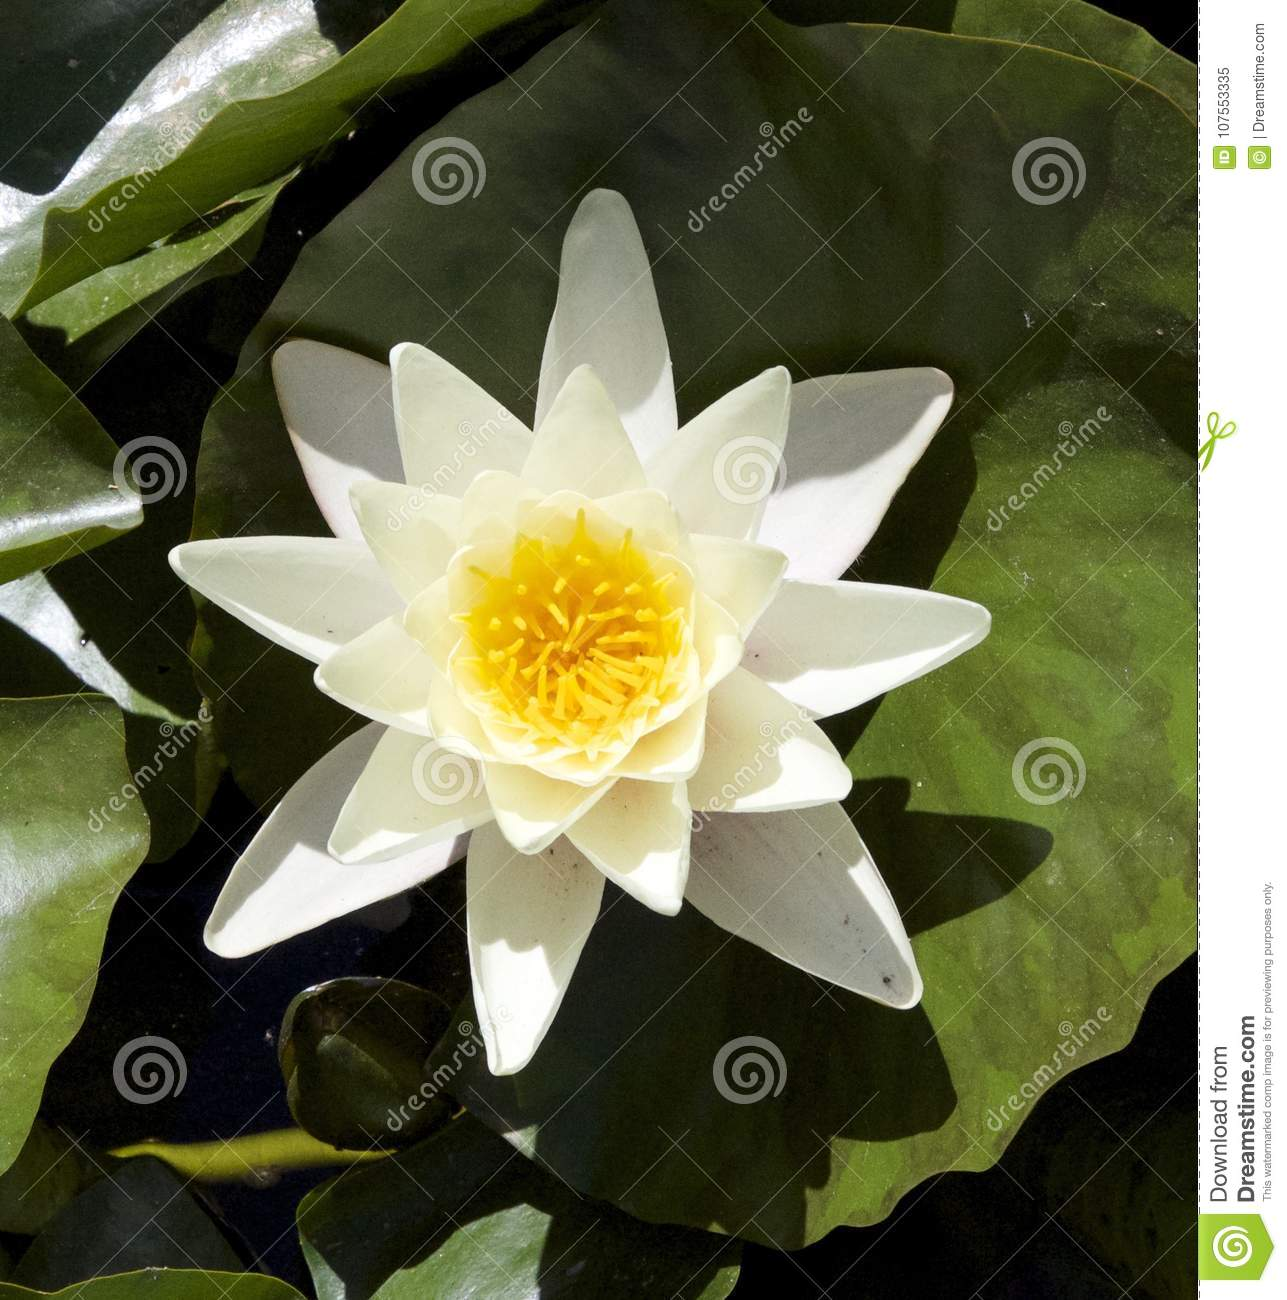 Water lily spanish garden stock image image of white 107553335 water lily spanish garden izmirmasajfo